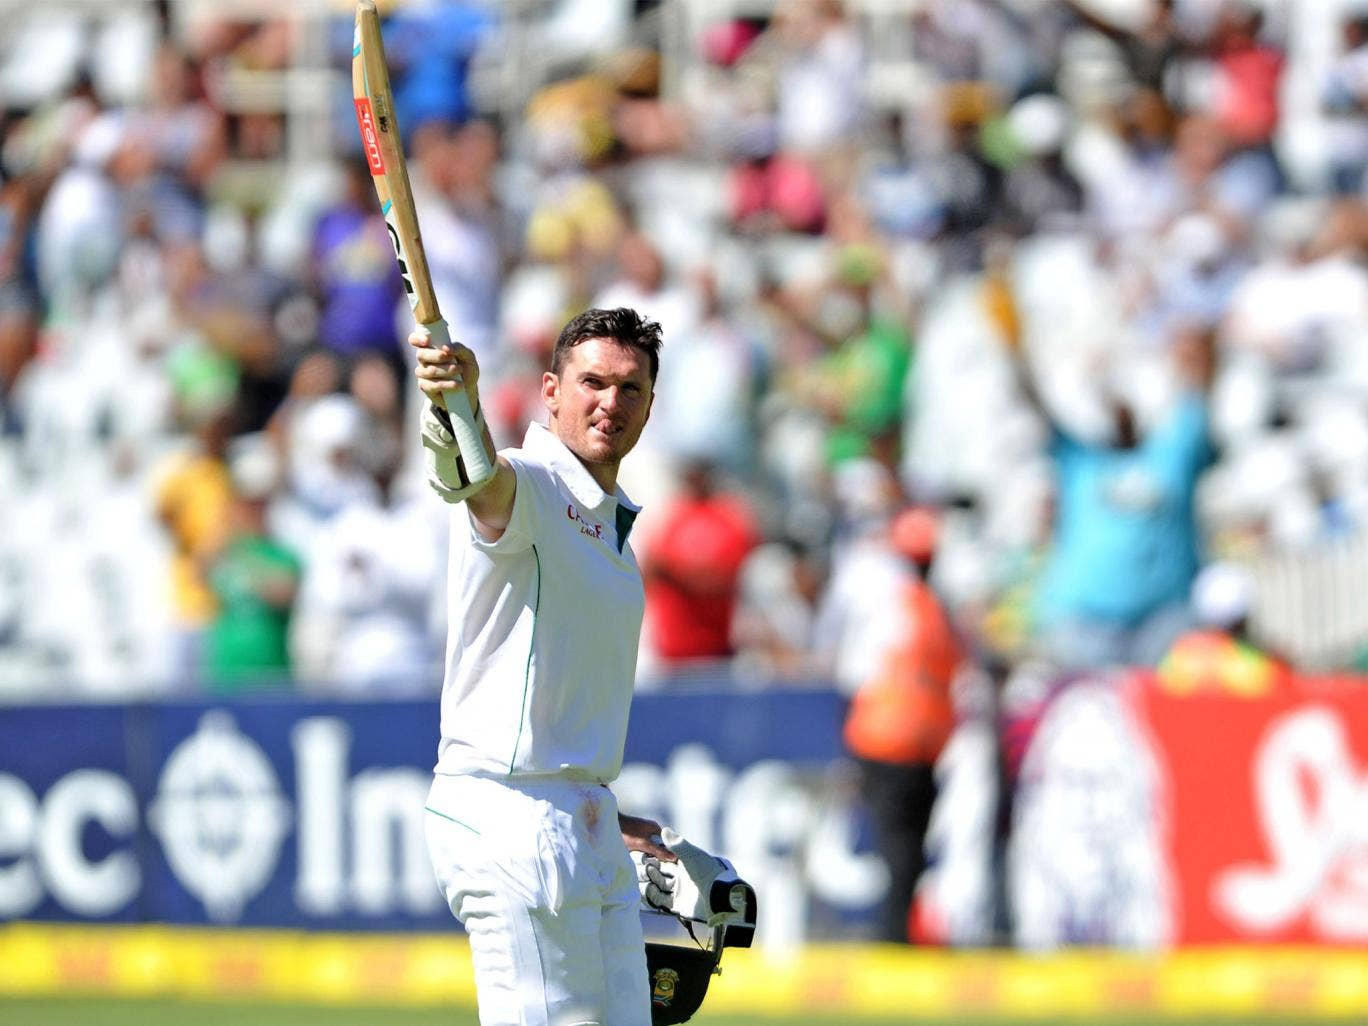 South Africa's captain Graeme Smith salutes the crowd after playing his last innings